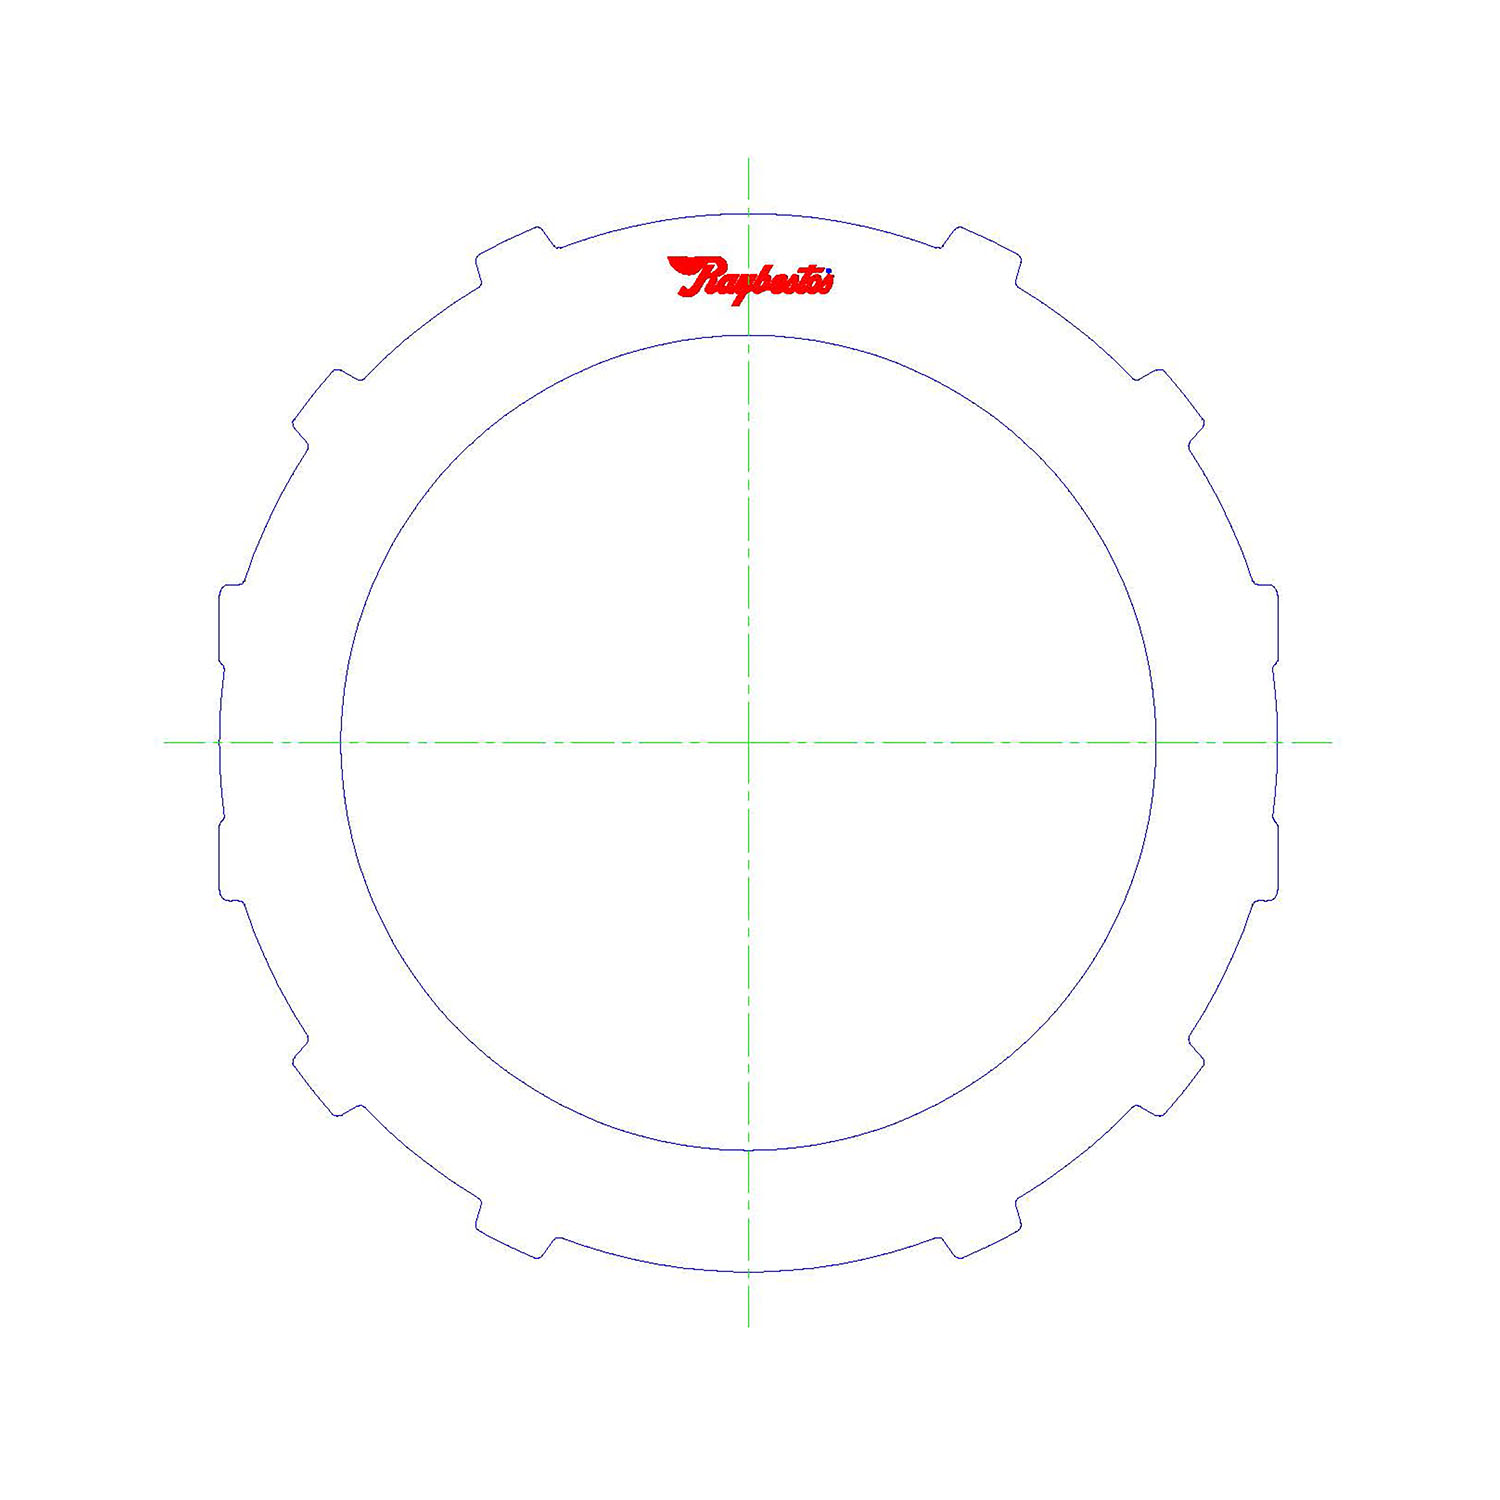 TH400, 3L80, TH400-R2, TH425, THMR2, 3L80HD, TH375, TH475, 4L80E, 4L85E Steel Clutch Plate